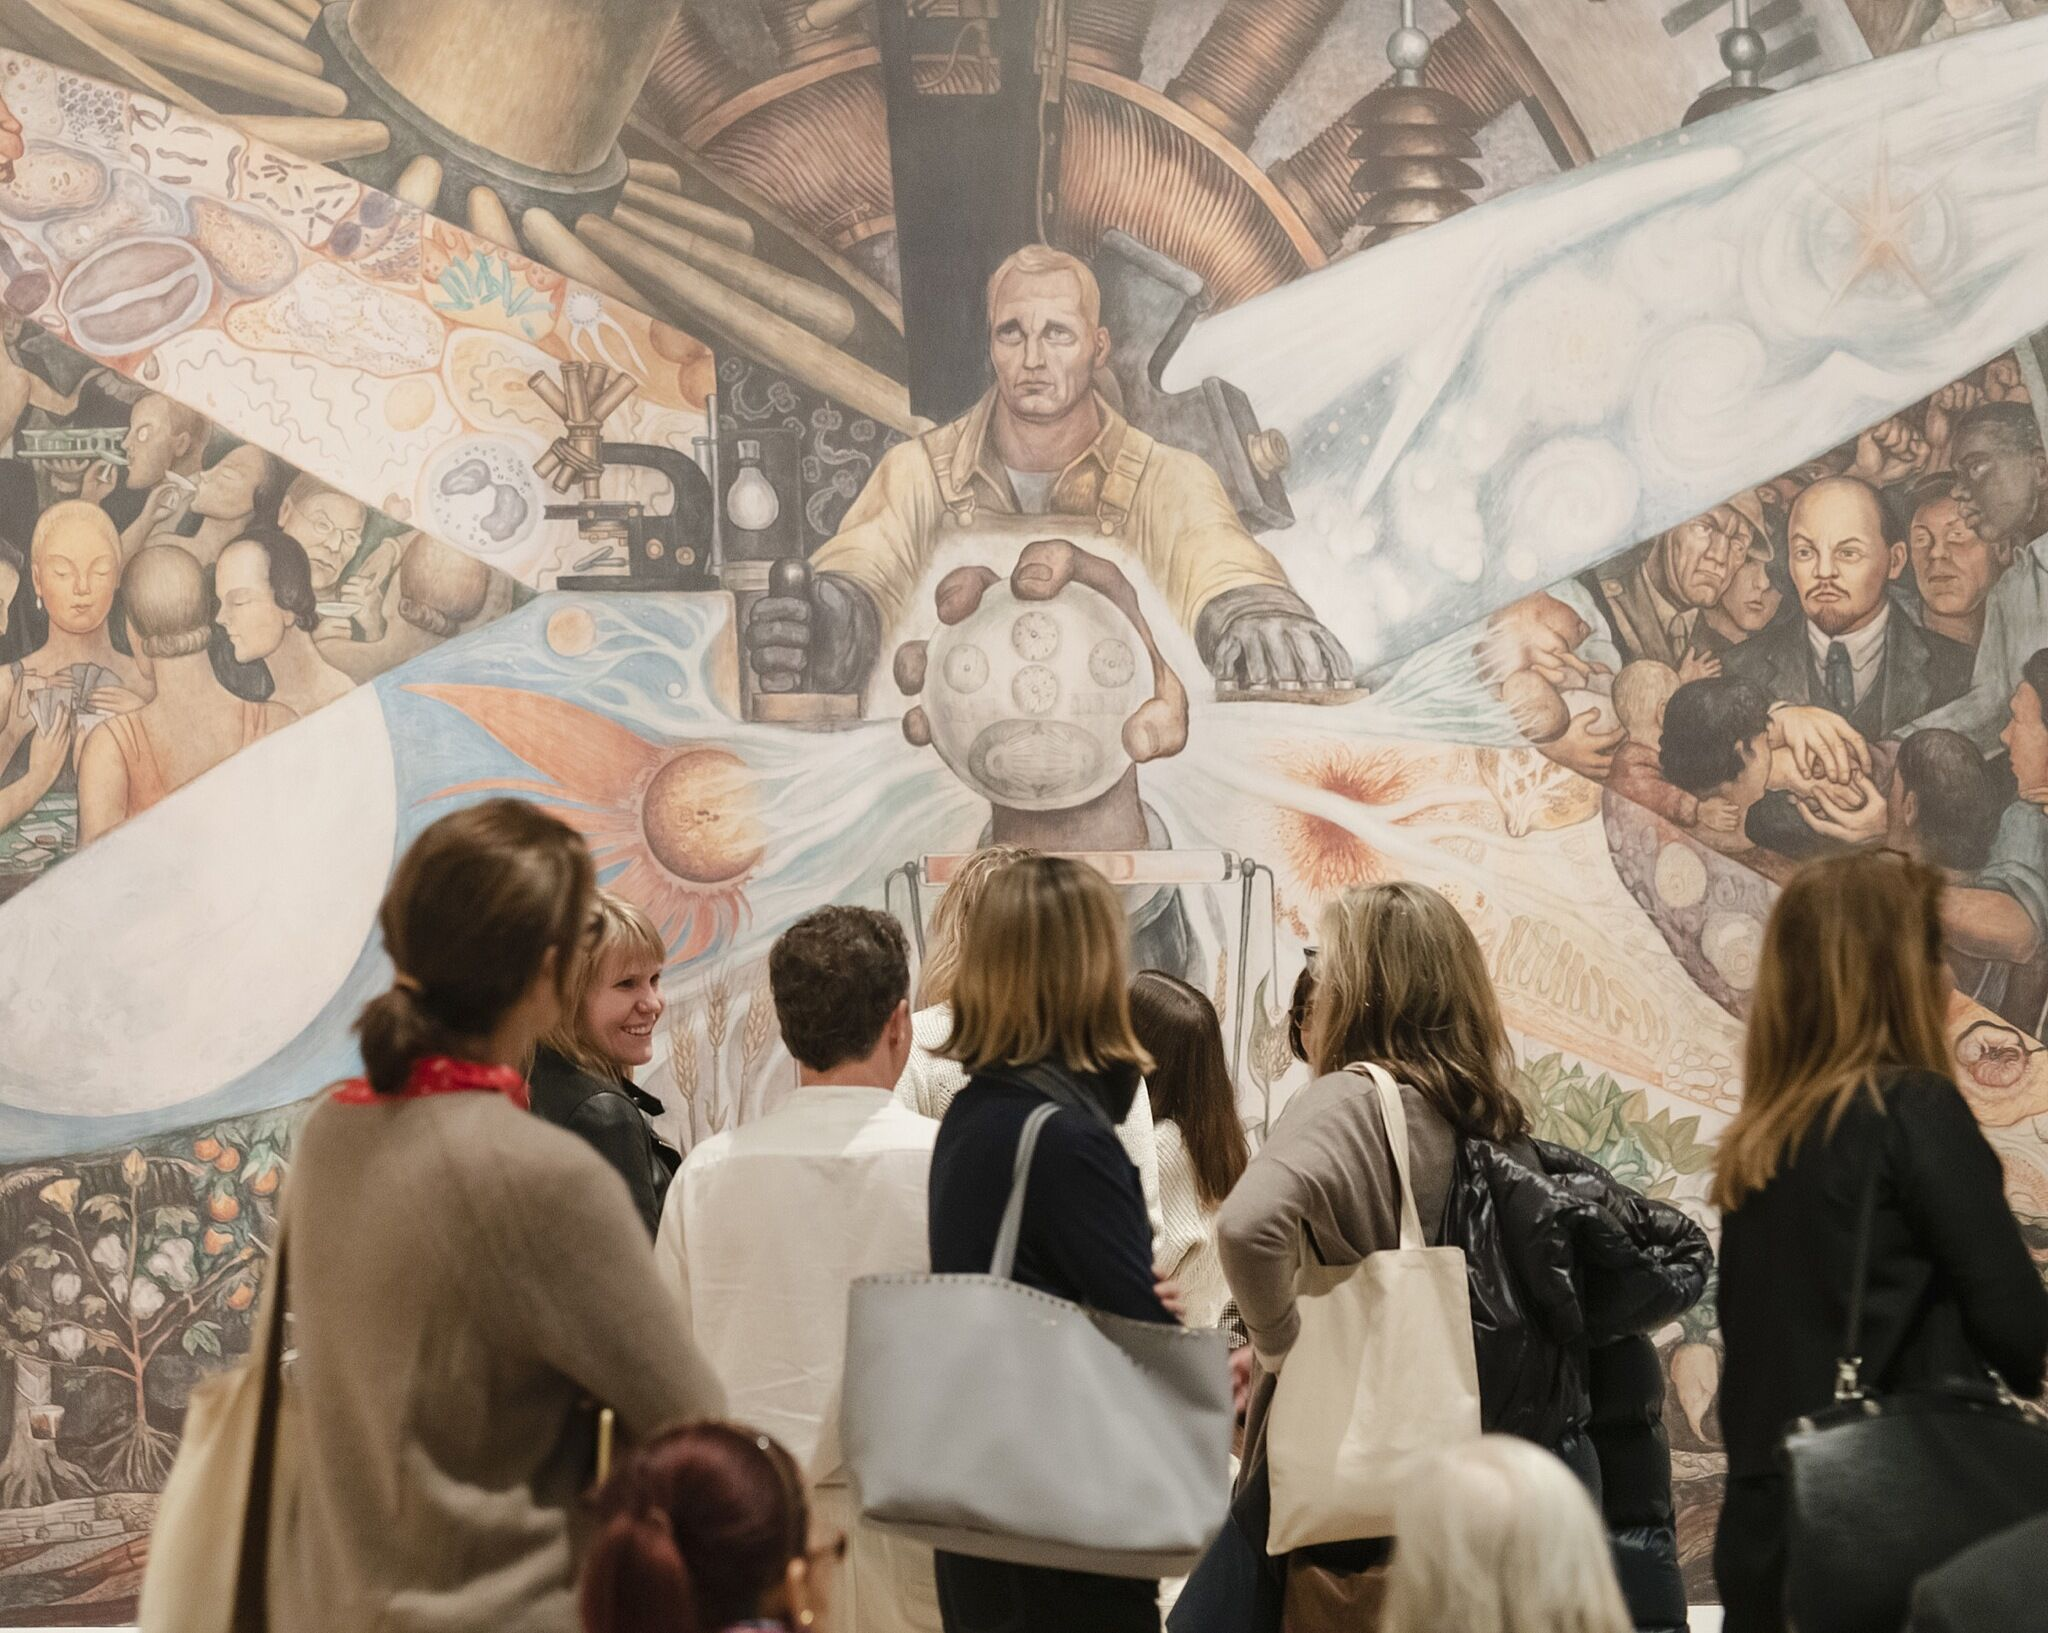 An installation photograph featuring people looking at a large mural.